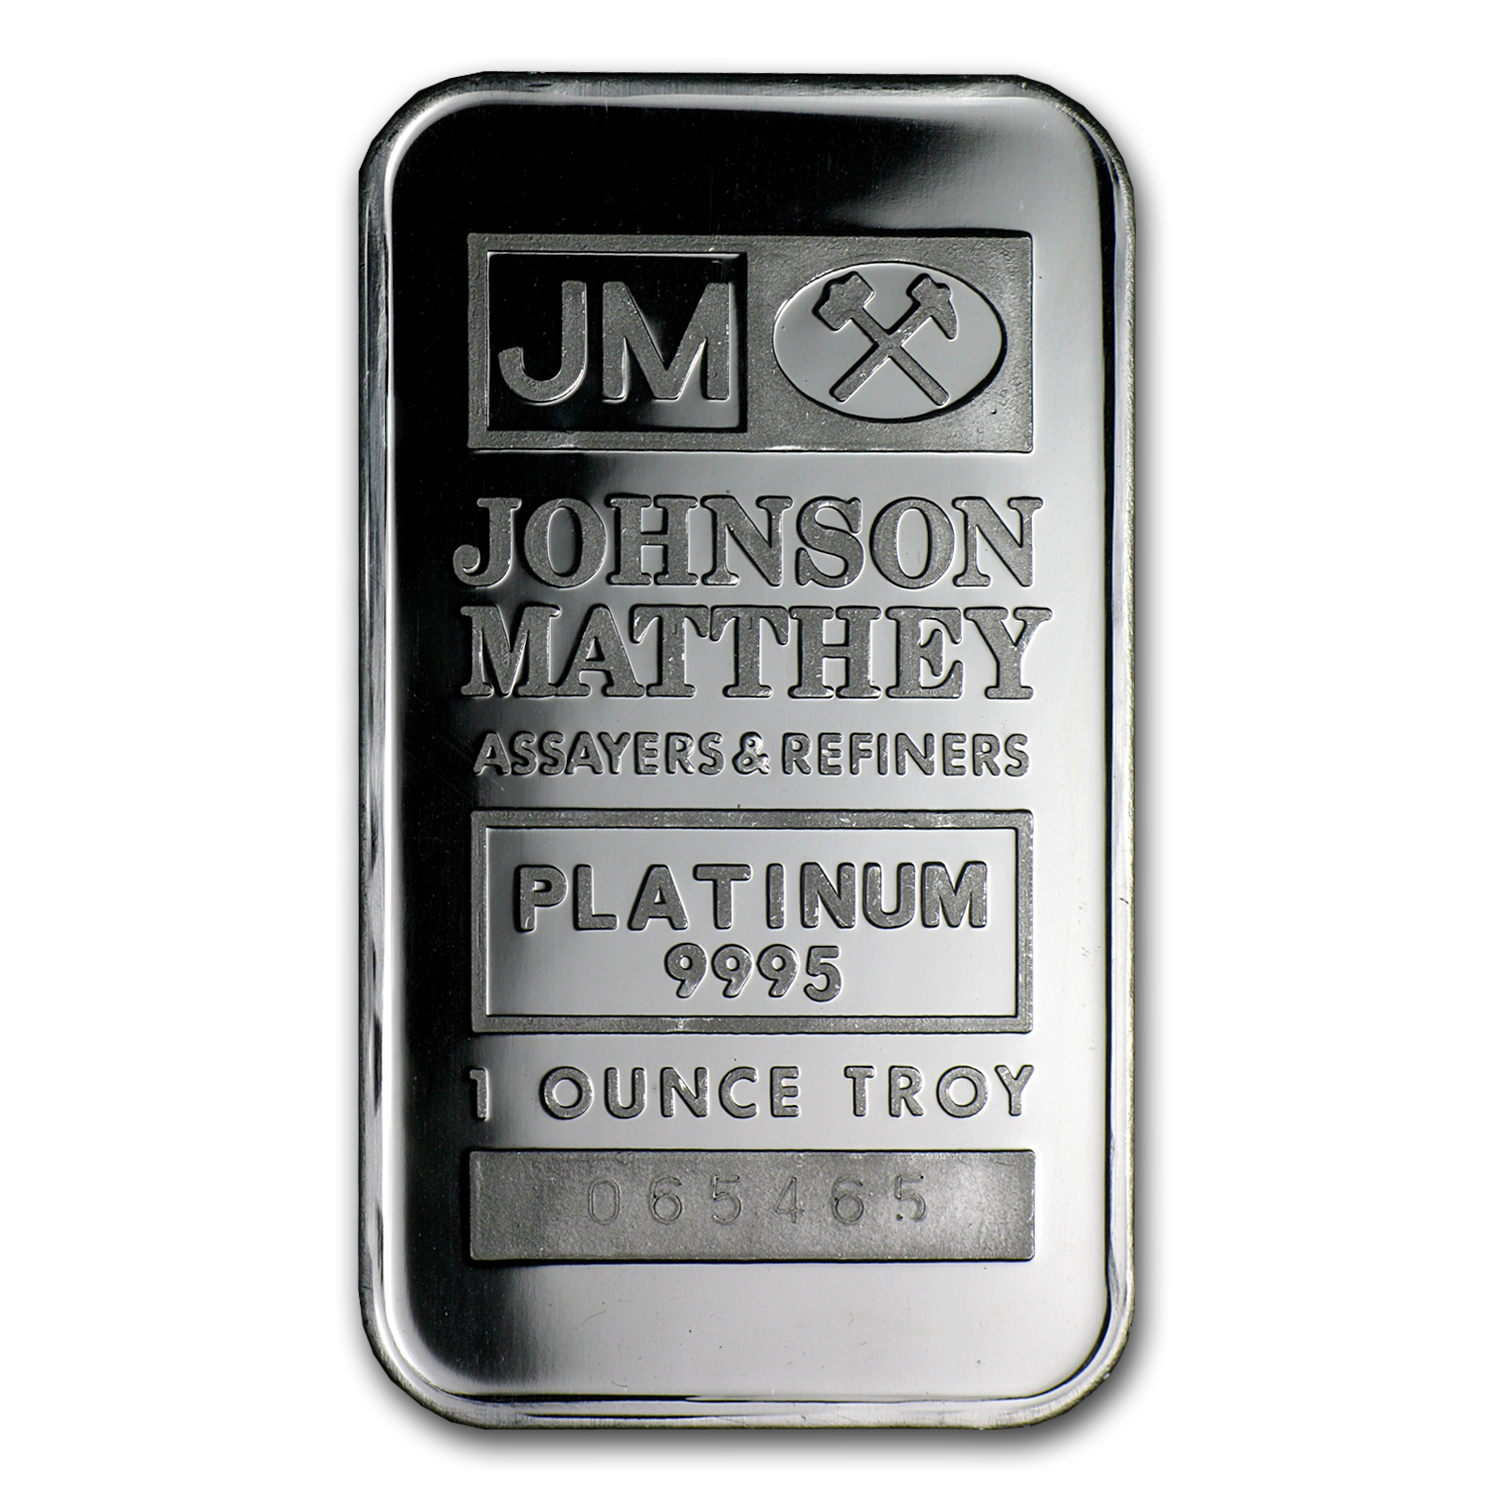 1 oz Platinum Bar - Johnson Matthey (No Assay)